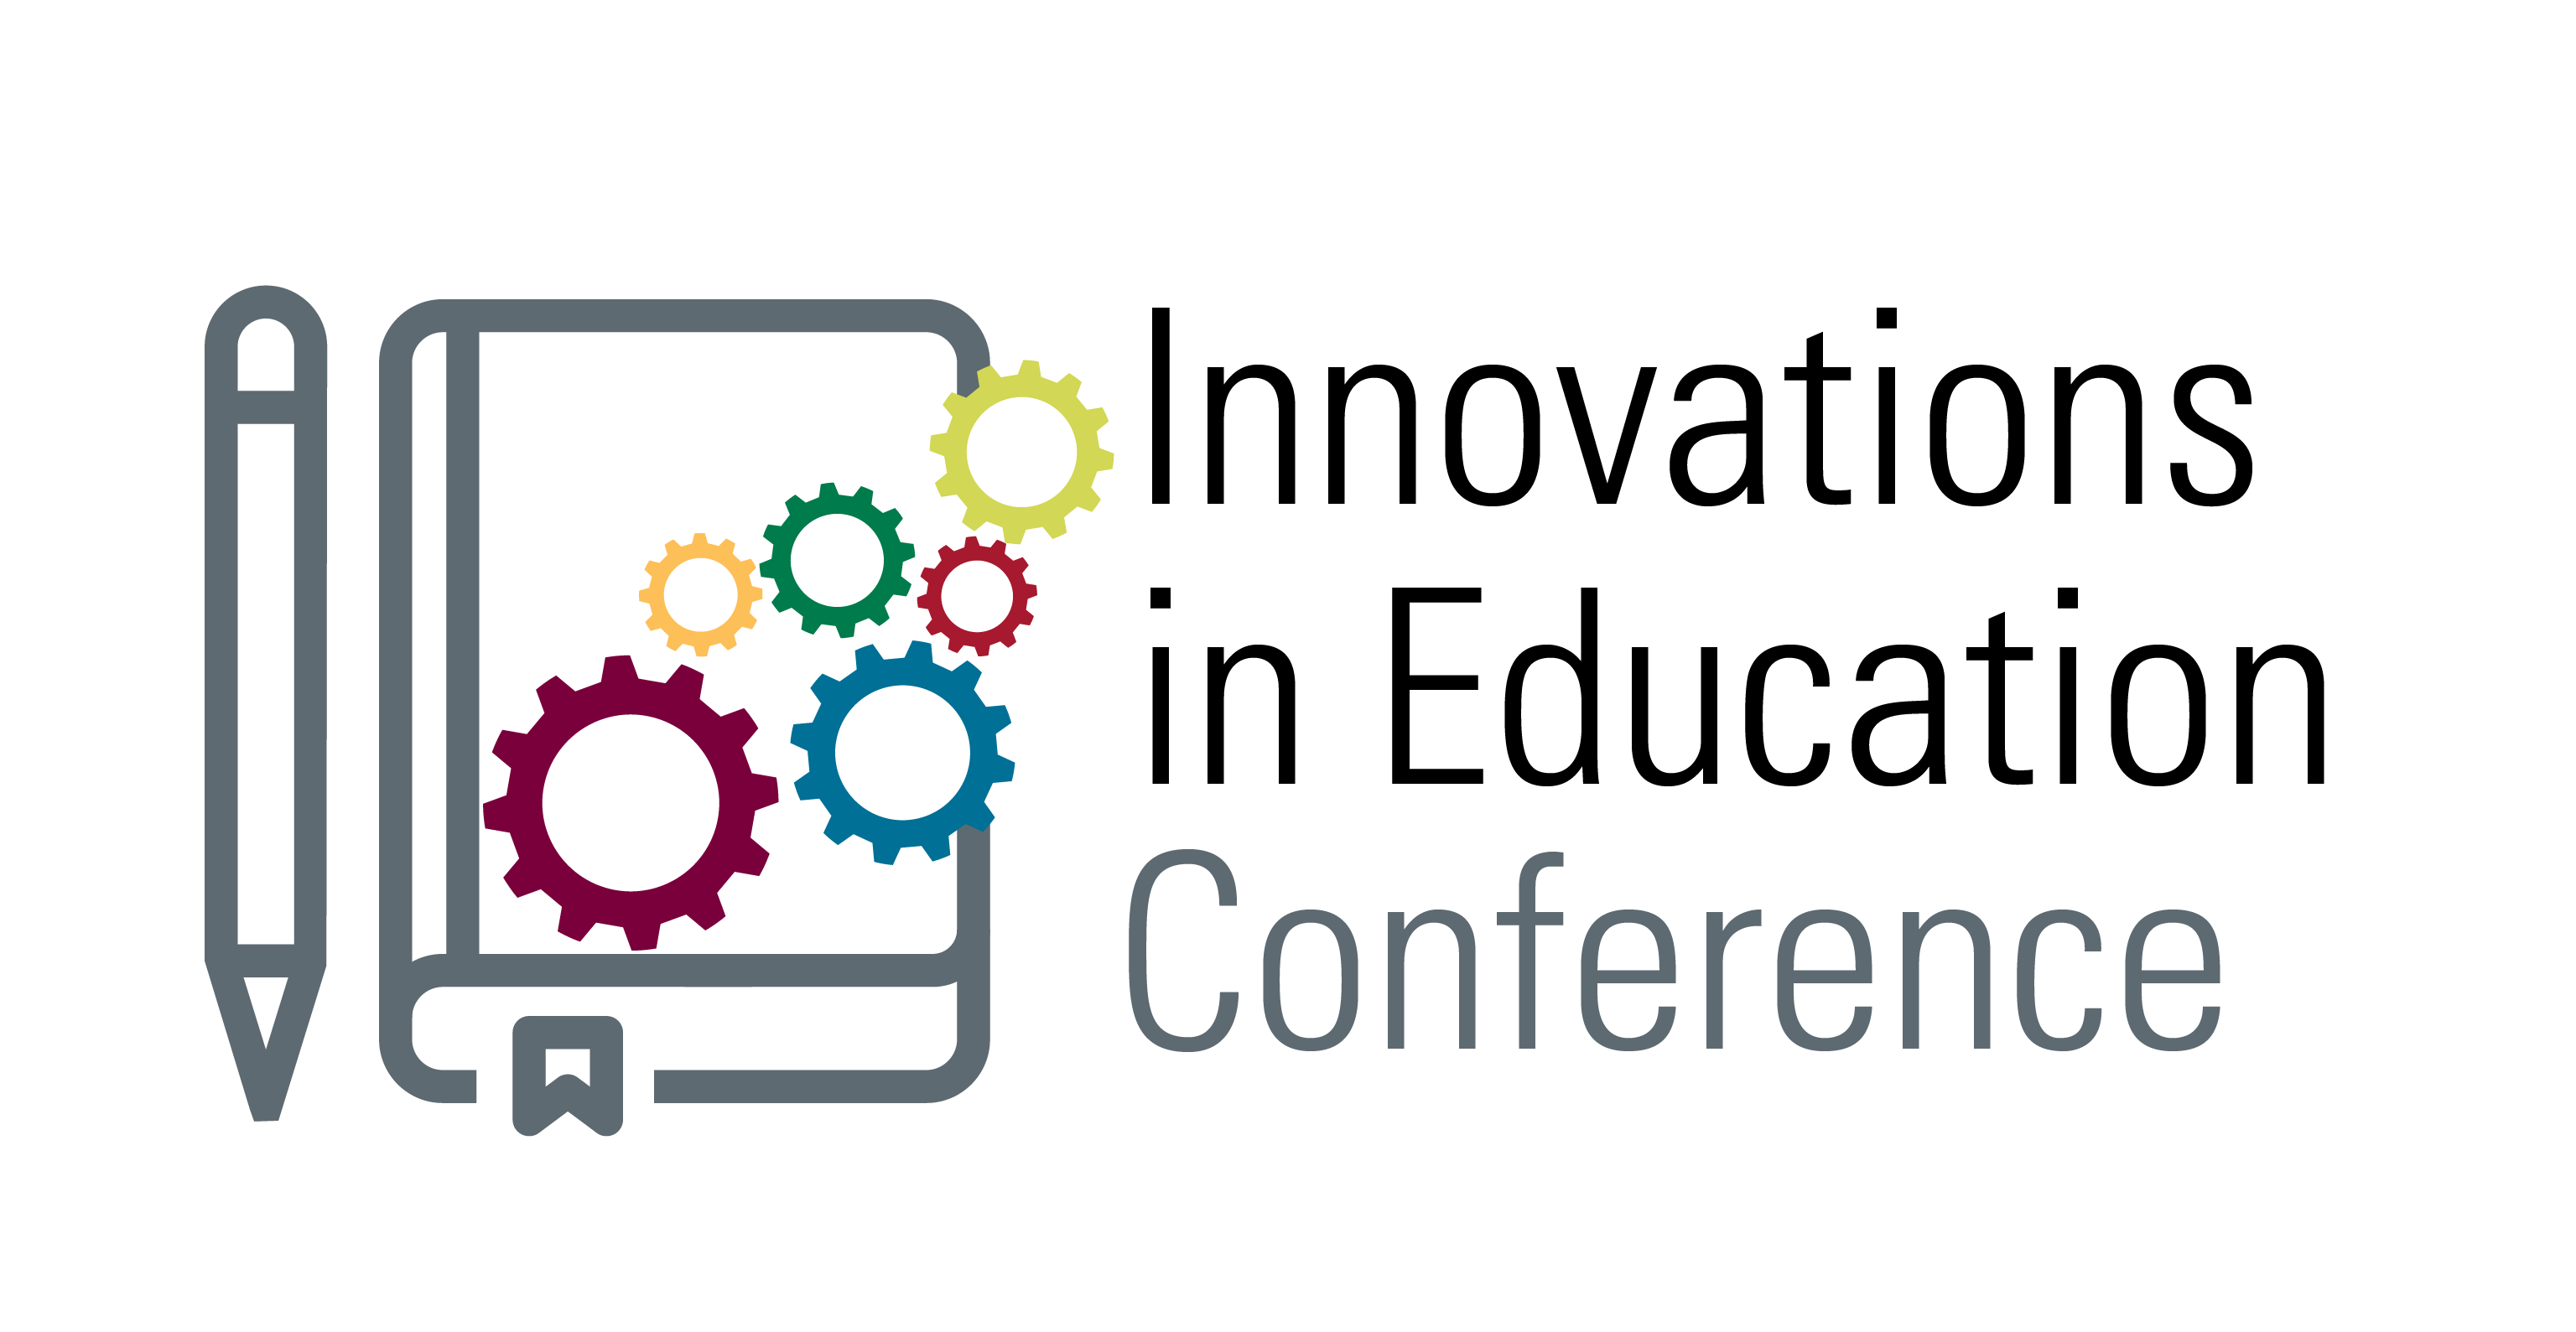 Innovations in Education Conference